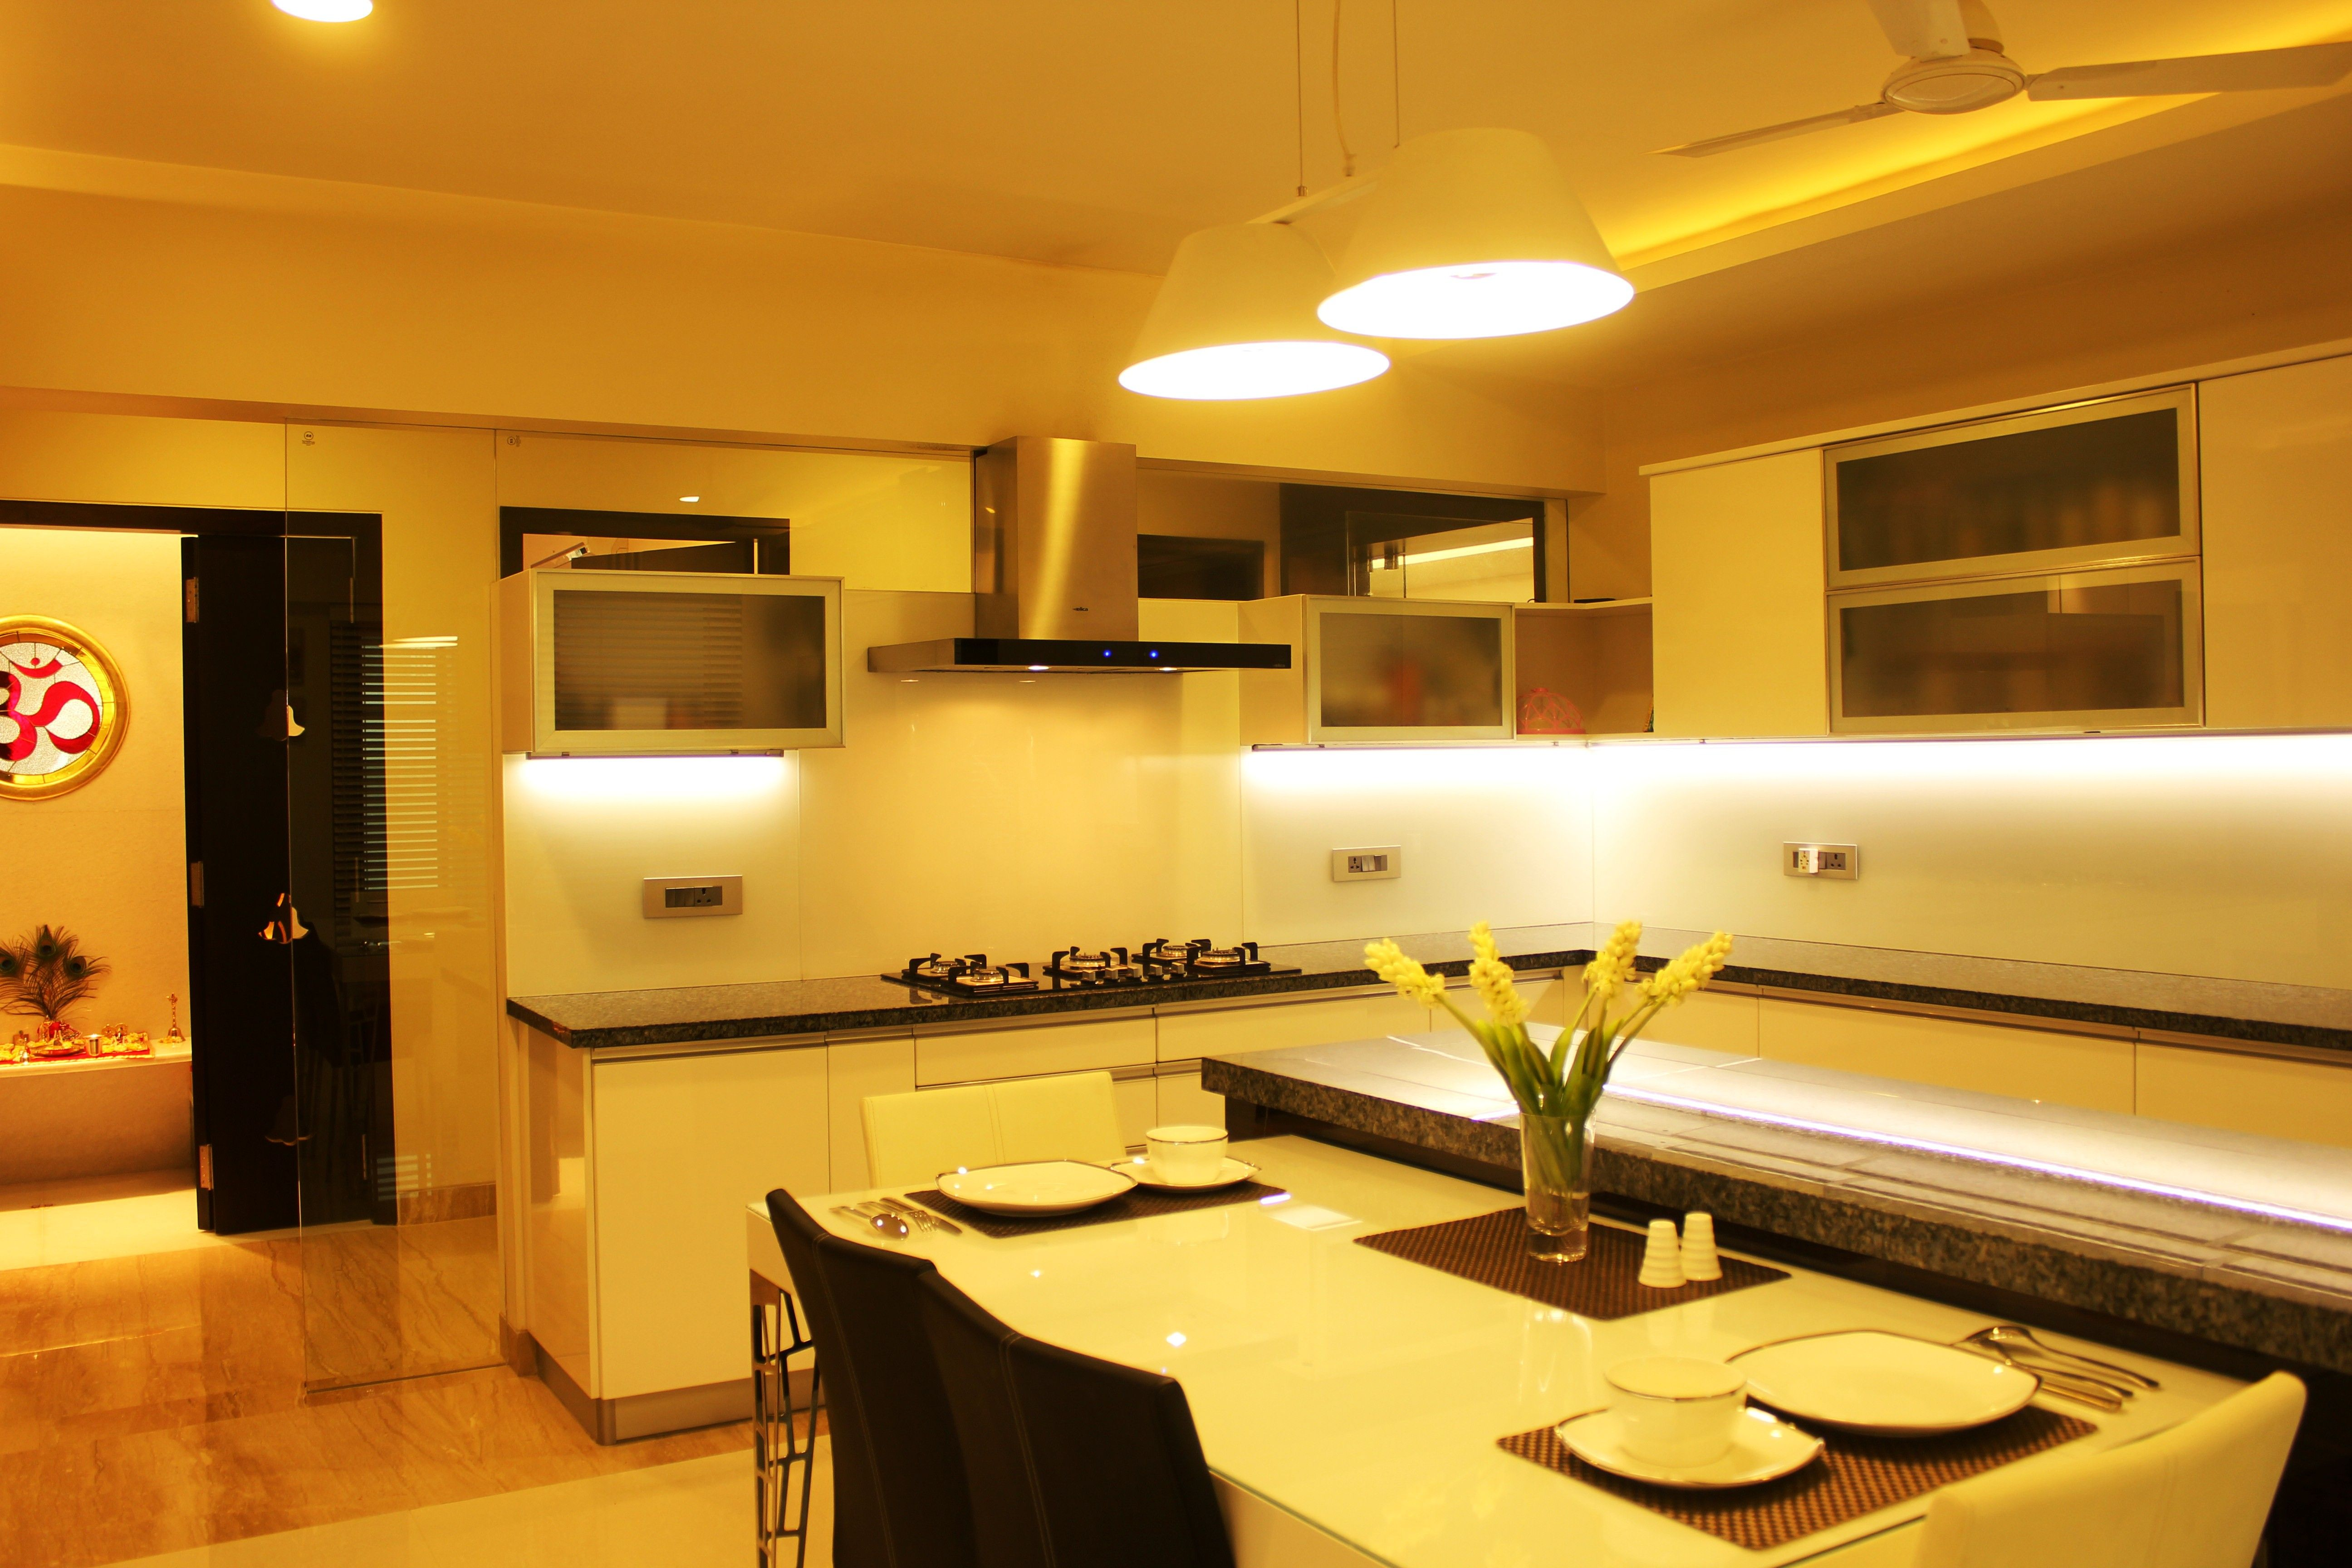 Striving To Offer The Best Functional And The Most Beautiful Kitchen Designs  To Our Customers, We Craft The Most Stunning Modular Kitchens #kitchens #  ...